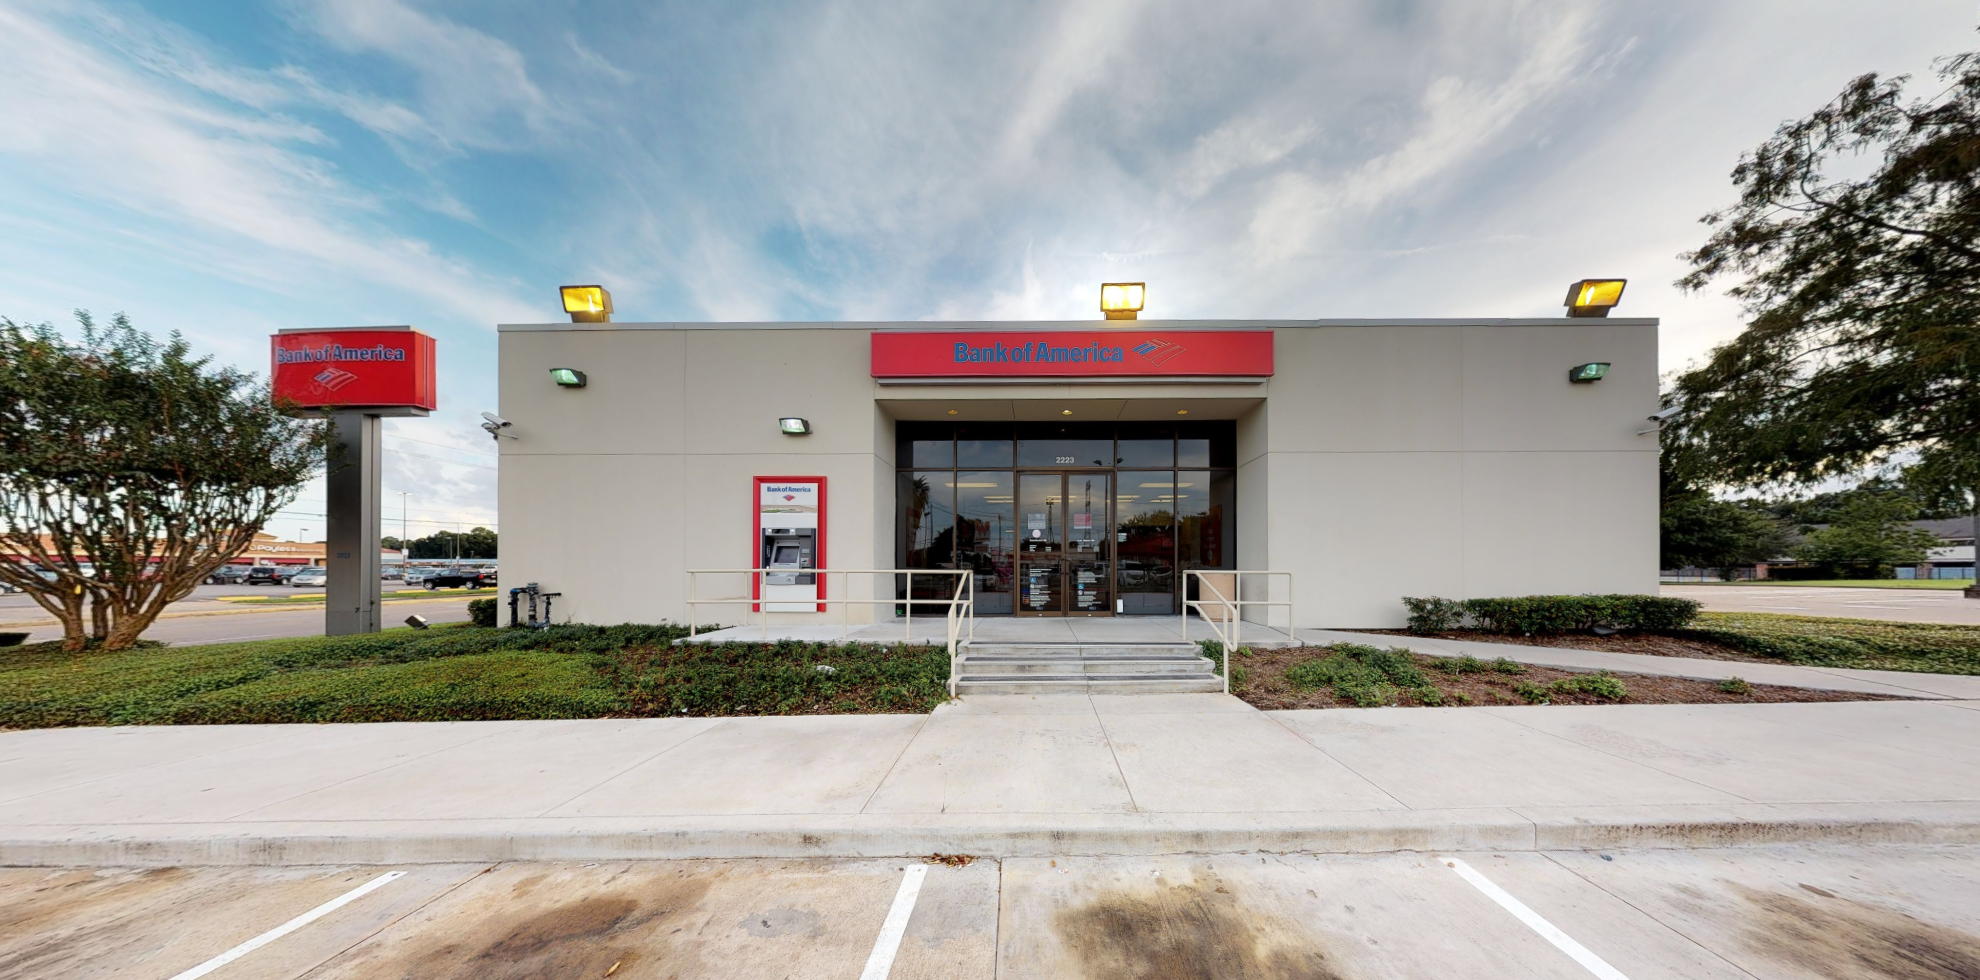 Bank of America financial center with drive-thru ATM | 2223 Gessner Rd, Houston, TX 77080